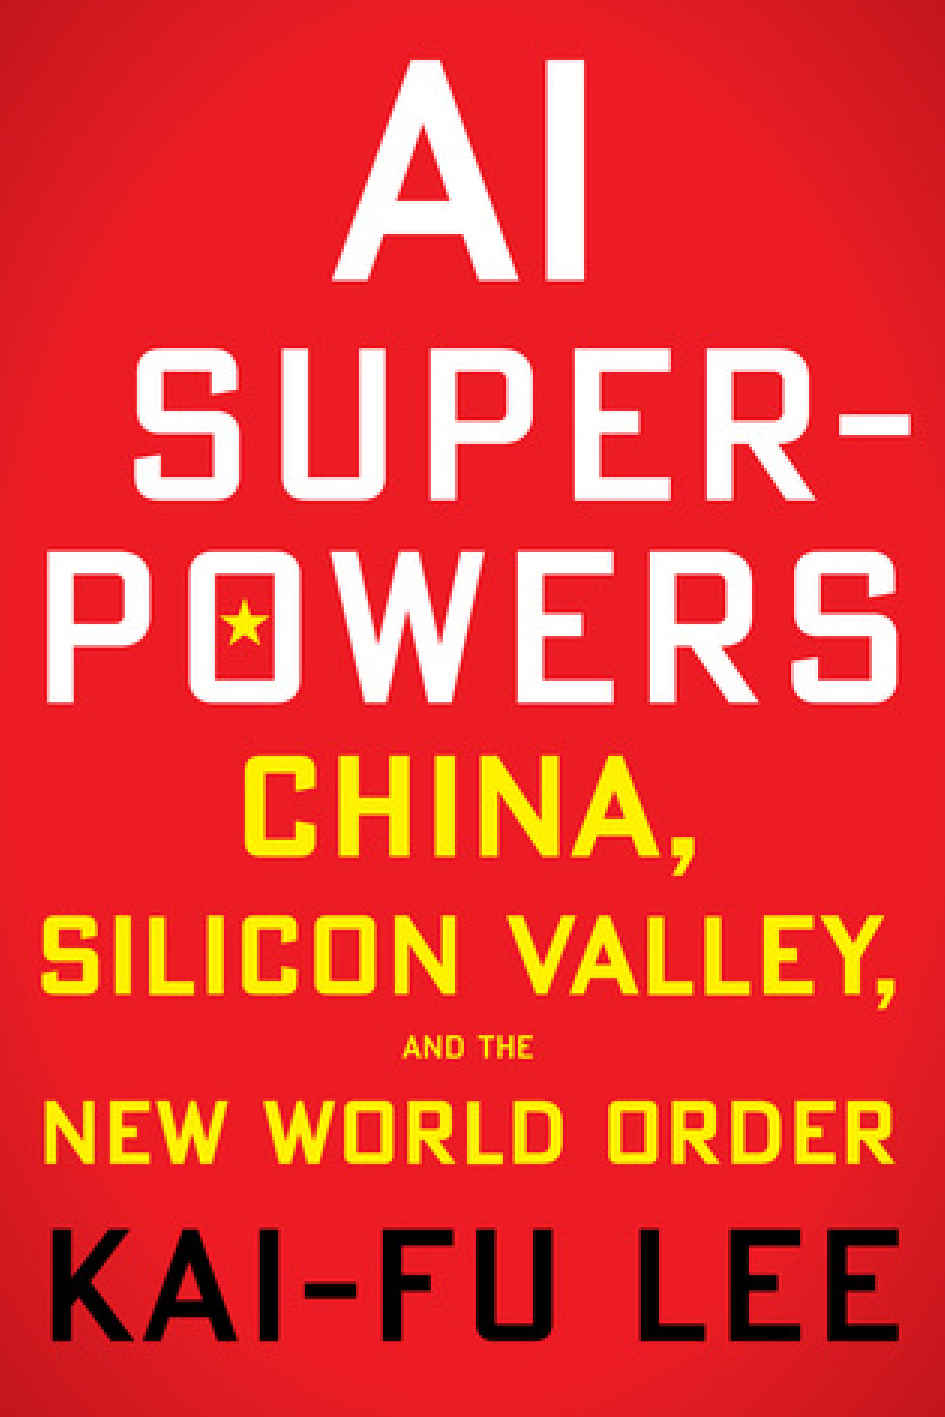 "AI Superpowers: China, the Silicon Valley and the New World Order   ,   Kai-Fu Lee   "" It's topical, it's tech, it's human, perfect read. This book is about AI, it is about state of development and geopolitics. A comparison between the two leading AI ecosystems in China and the US. A human-centric perspective on how to approach AI based on the author's own life experiences .""   Victoria Sarmiento , Policy and Communications Assistant"